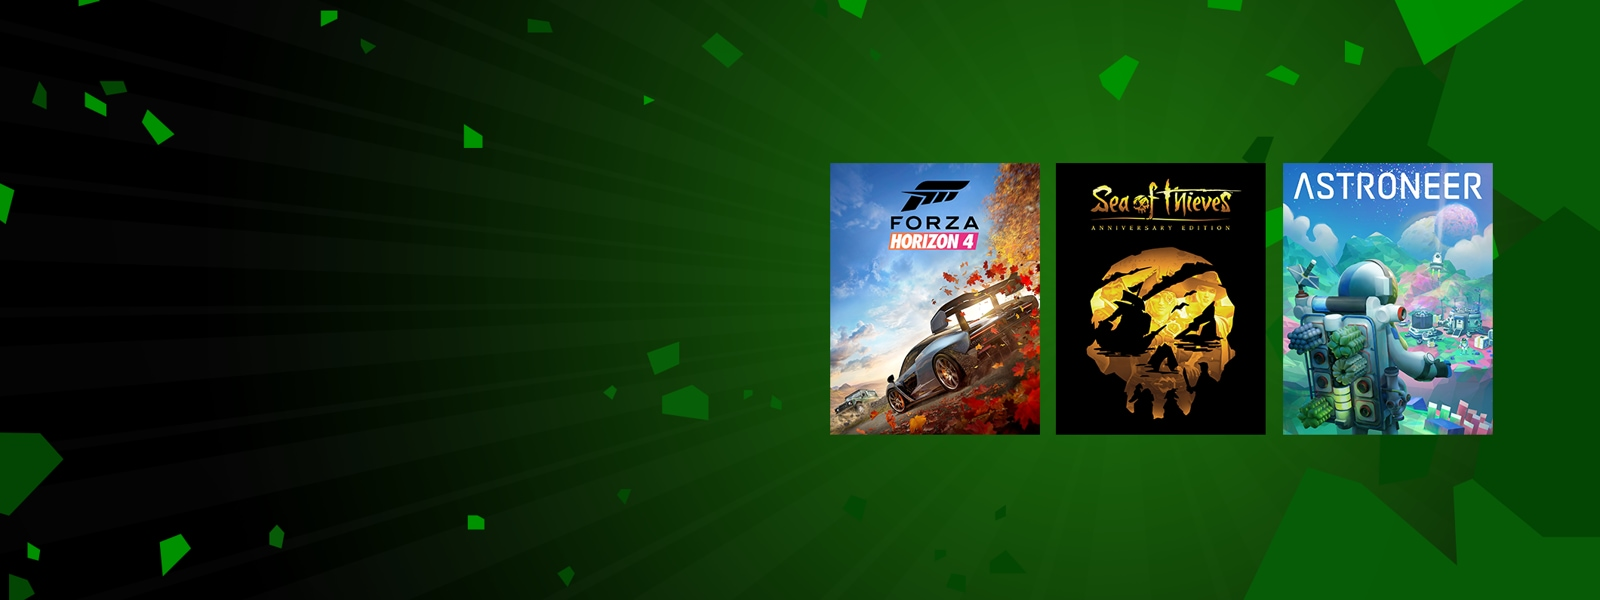 Forza Horizon 4, Sea of Thieves Anniversary Edition, and Astroneer games